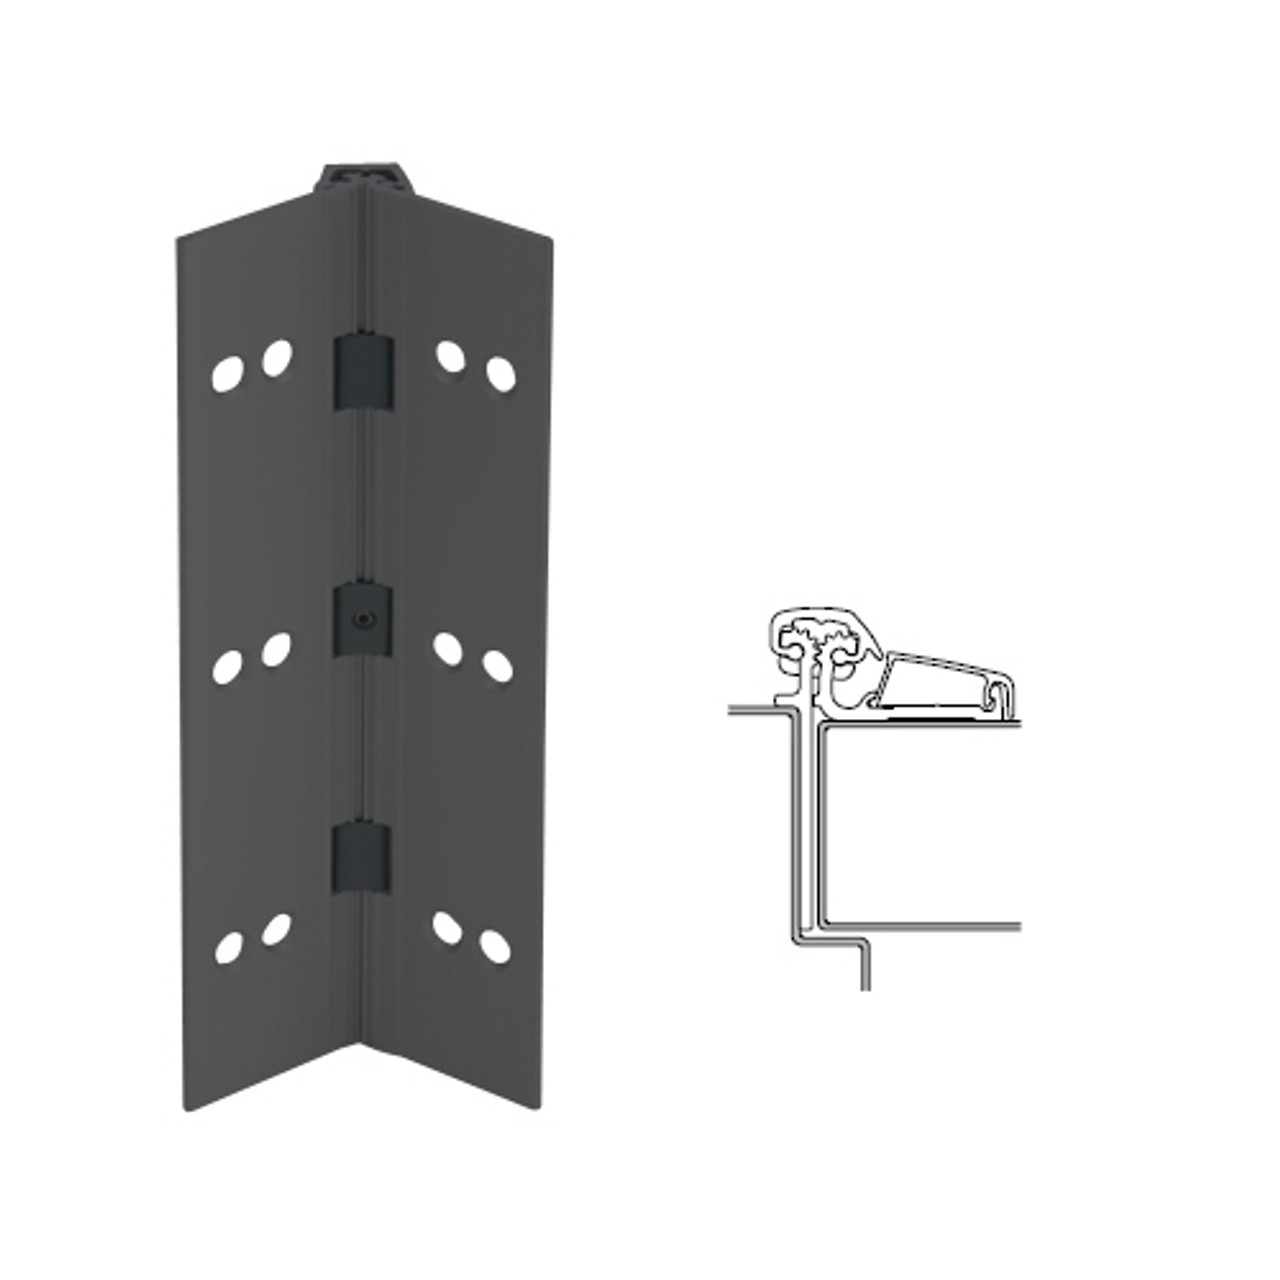 054XY-315AN-120-TF IVES Adjustable Half Surface Continuous Geared Hinges with Thread Forming Screws in Anodized Black